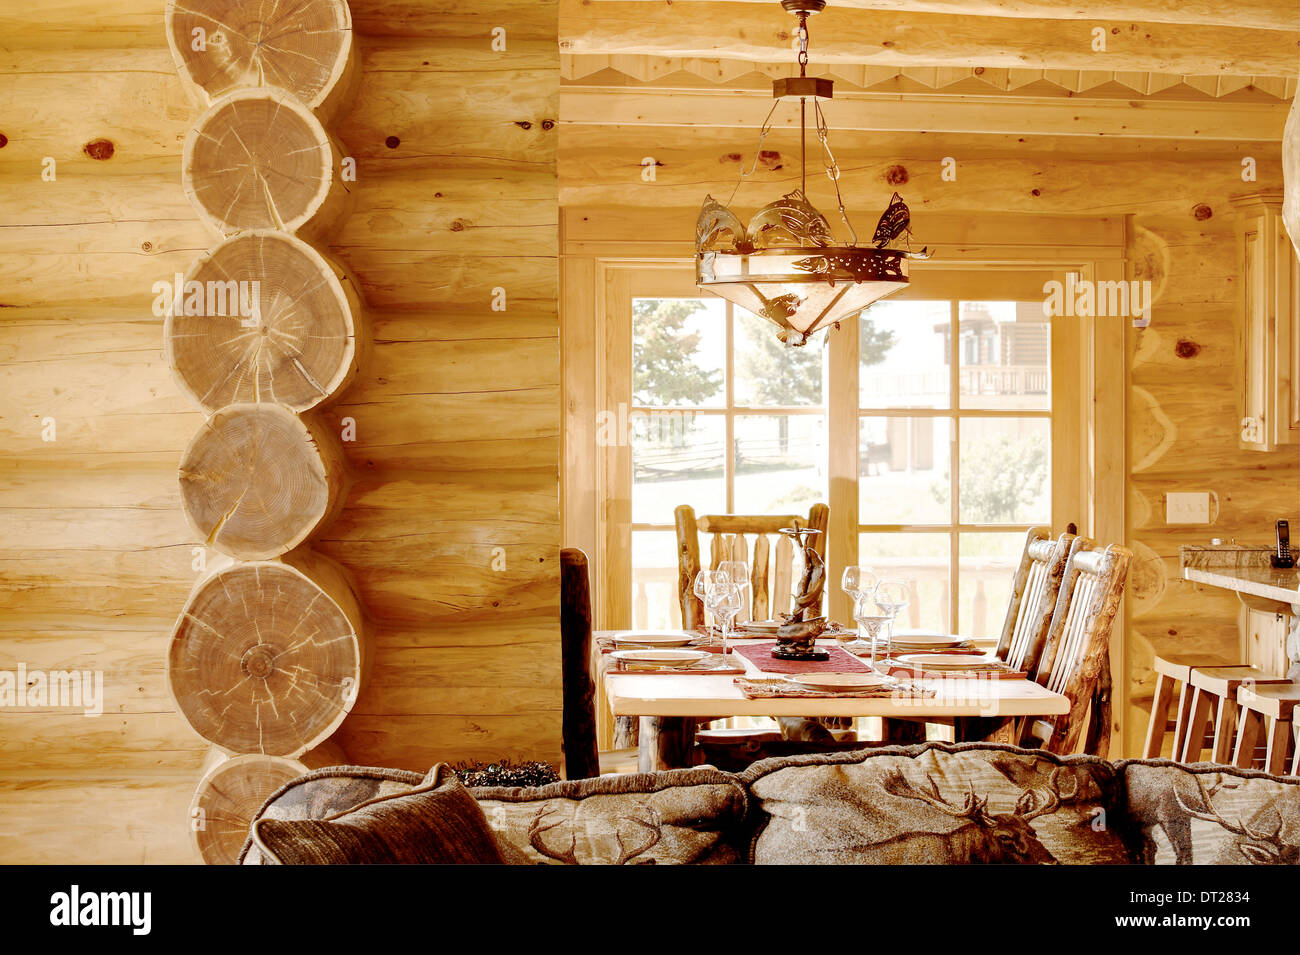 The Great Room In A Modern Log Cabin, With Rustic Decor